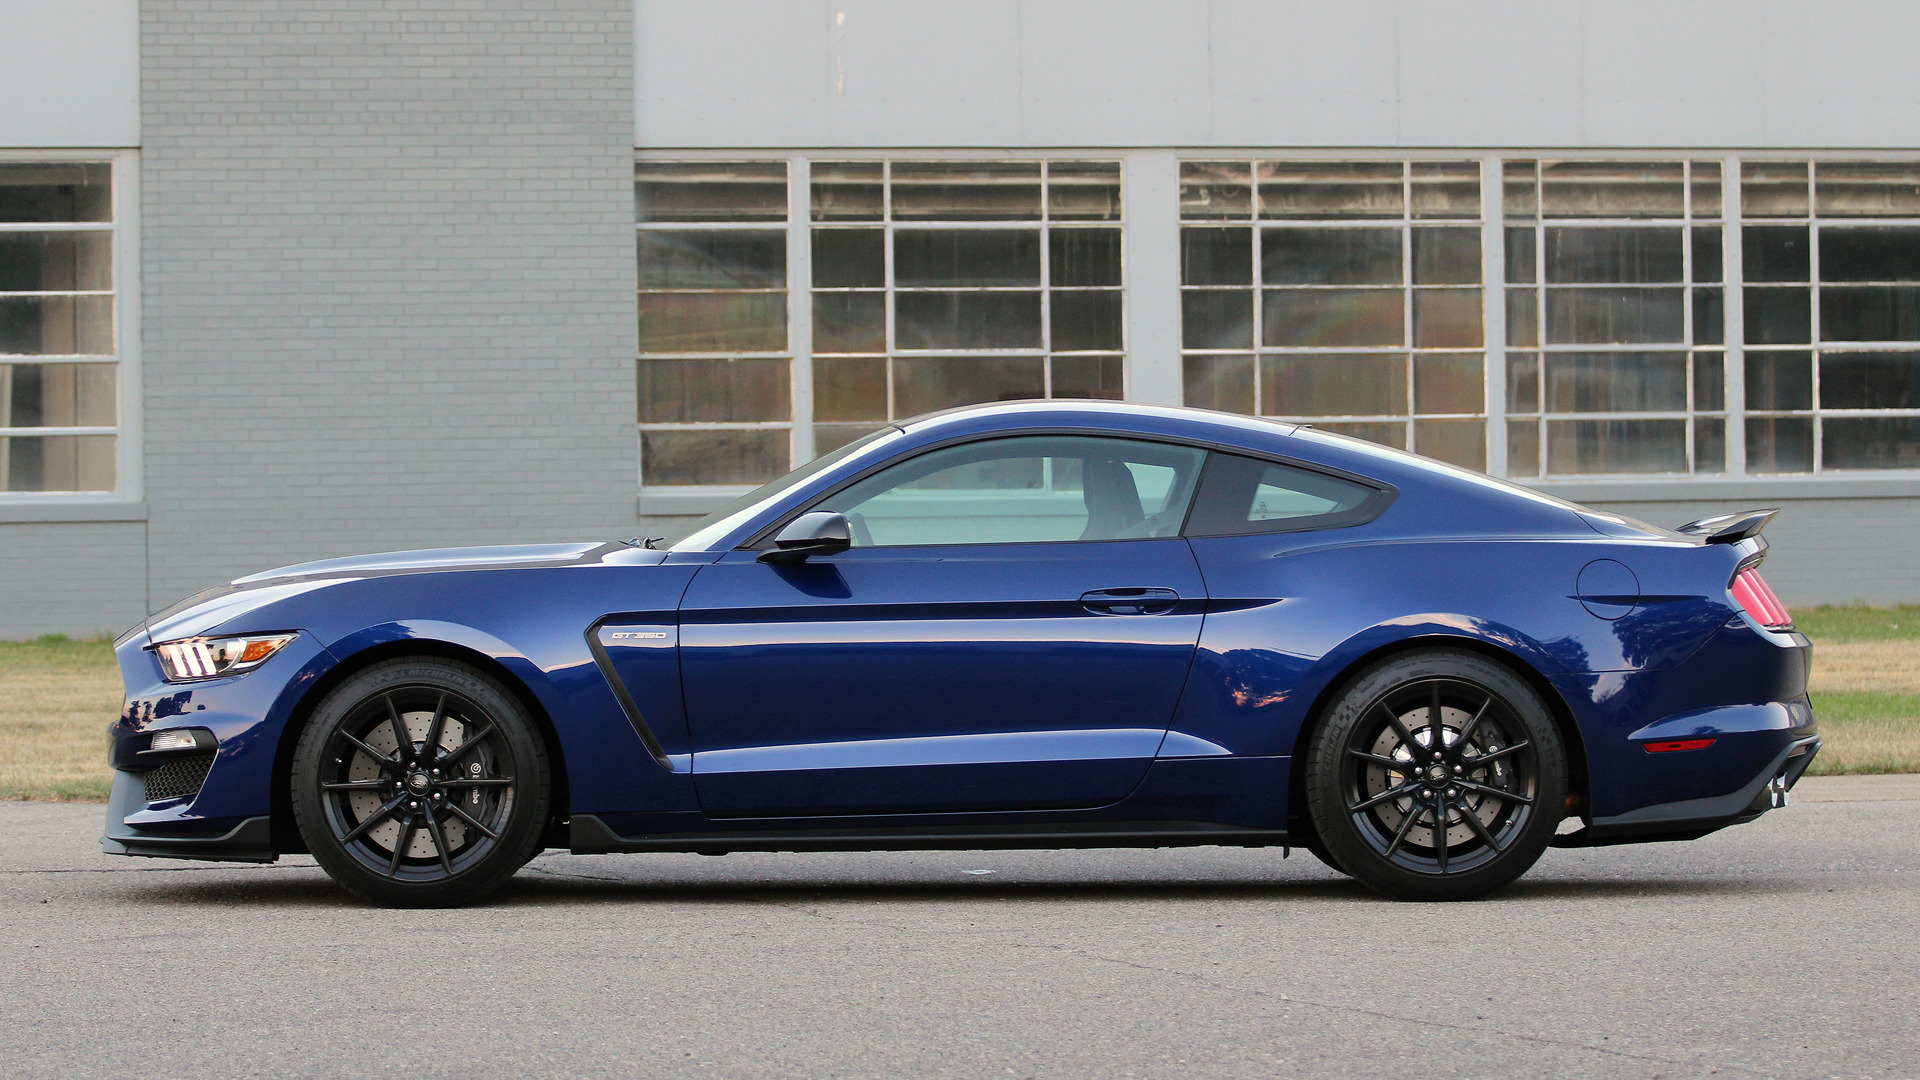 Mustang shelby gt350 r recalled for risk of engine seizure and fire